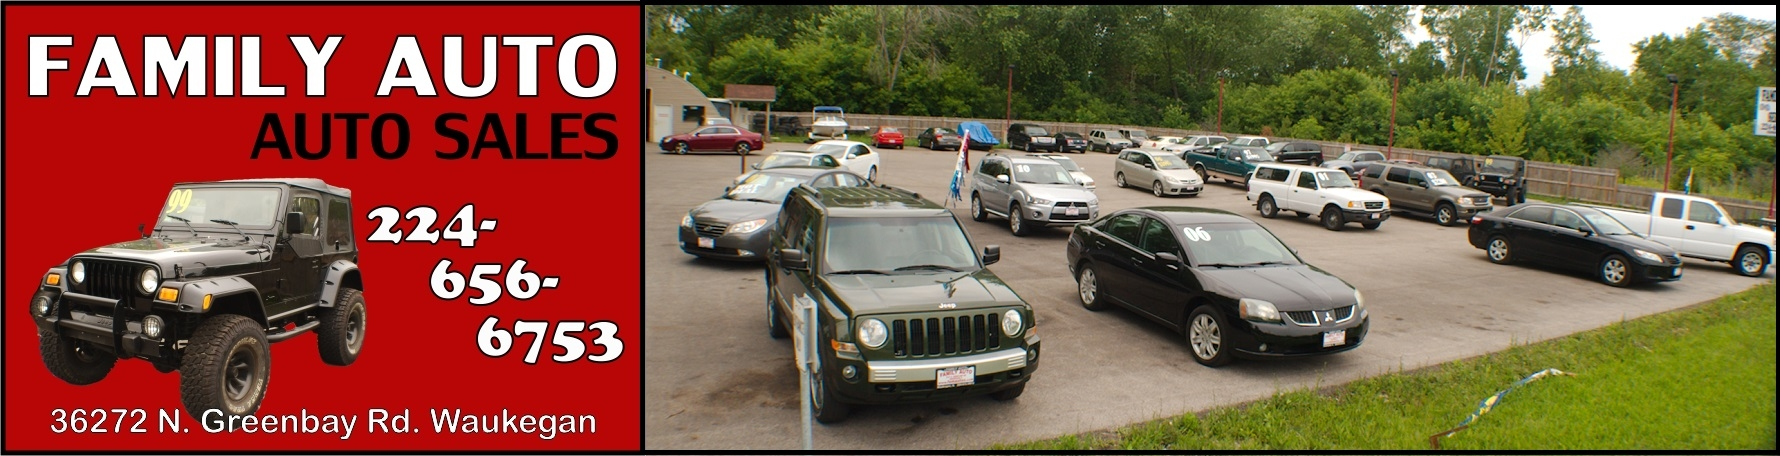 Family Auto used car sales Waukegan